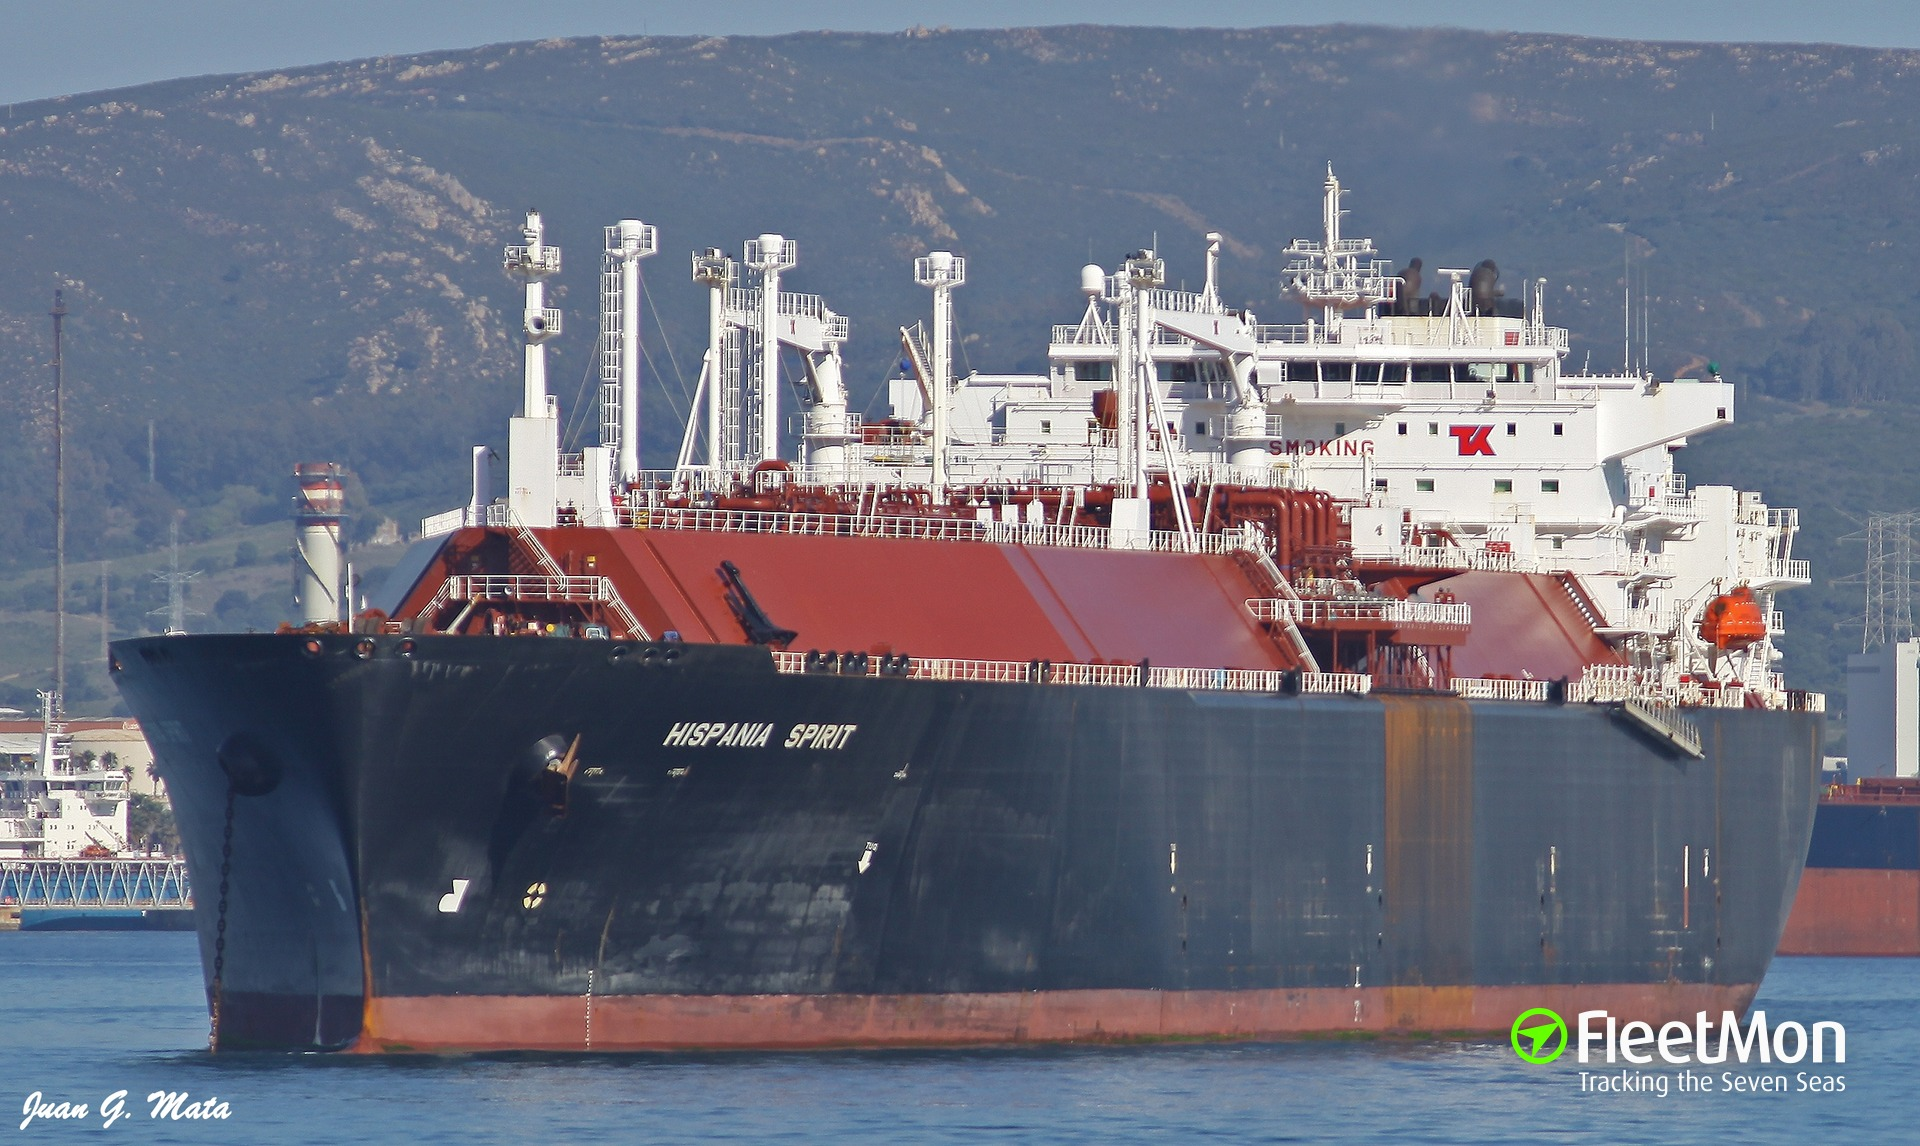 211 kg of cocaine found on VLGC Hispania Spirit, tanker detained, Peru